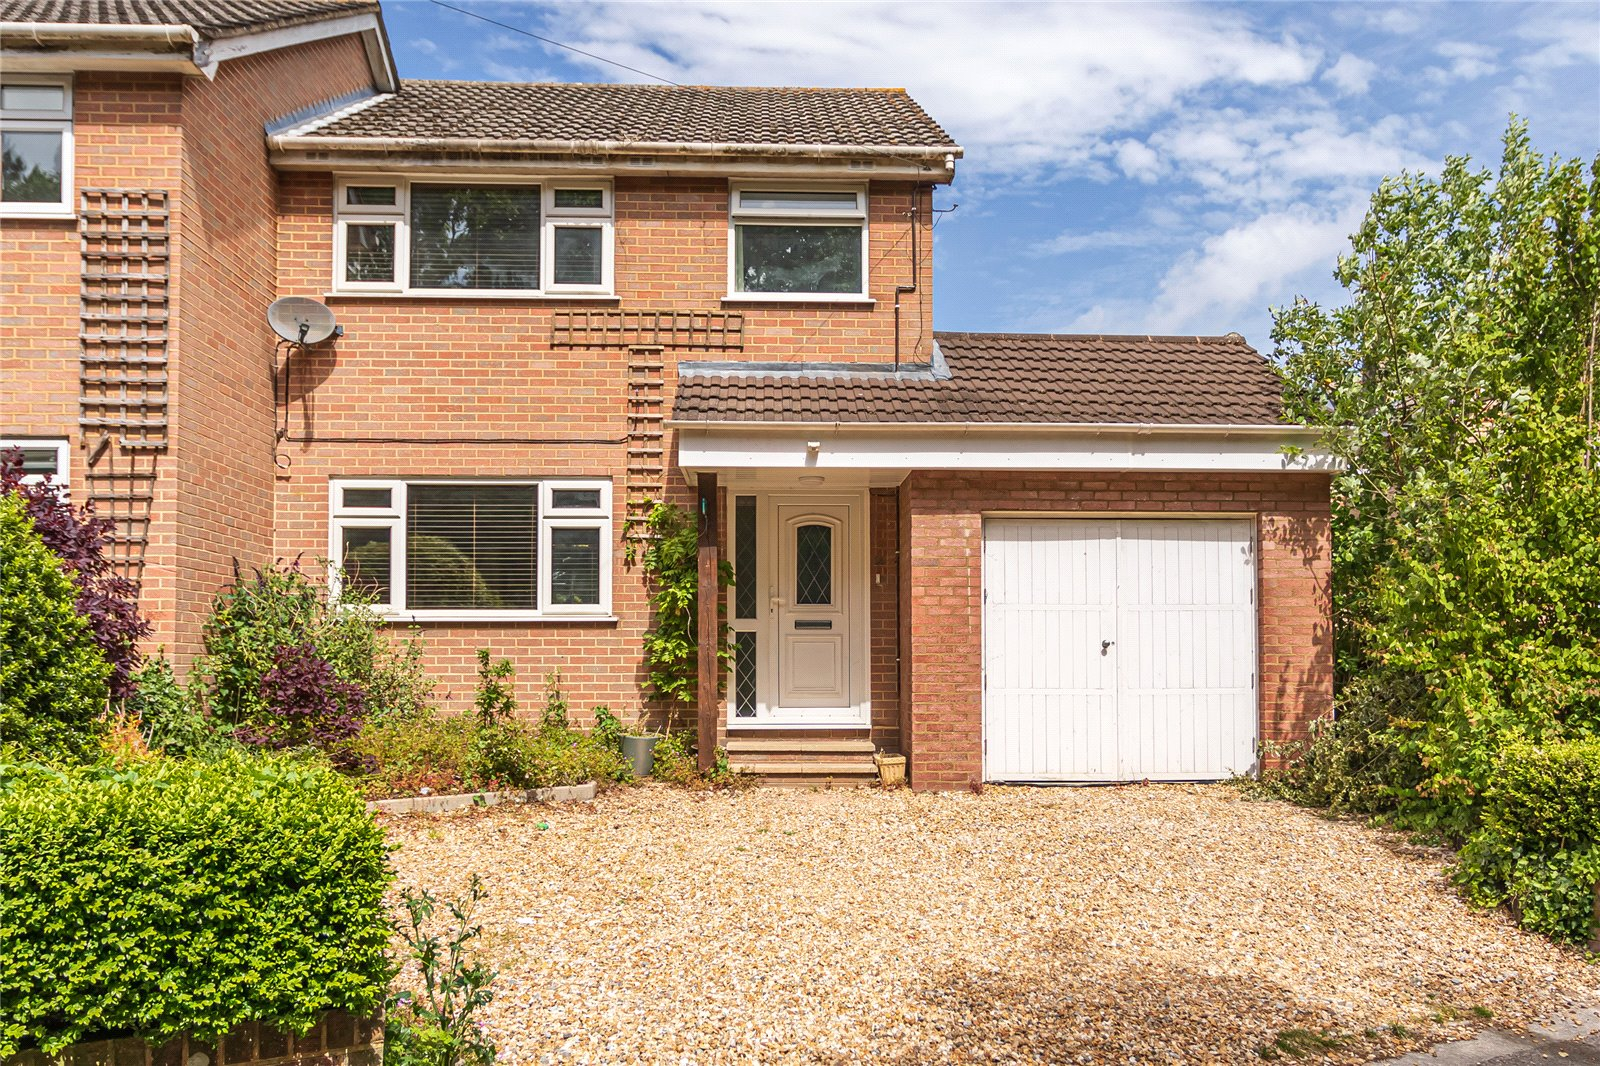 3 bed house for sale in Poole, BH14